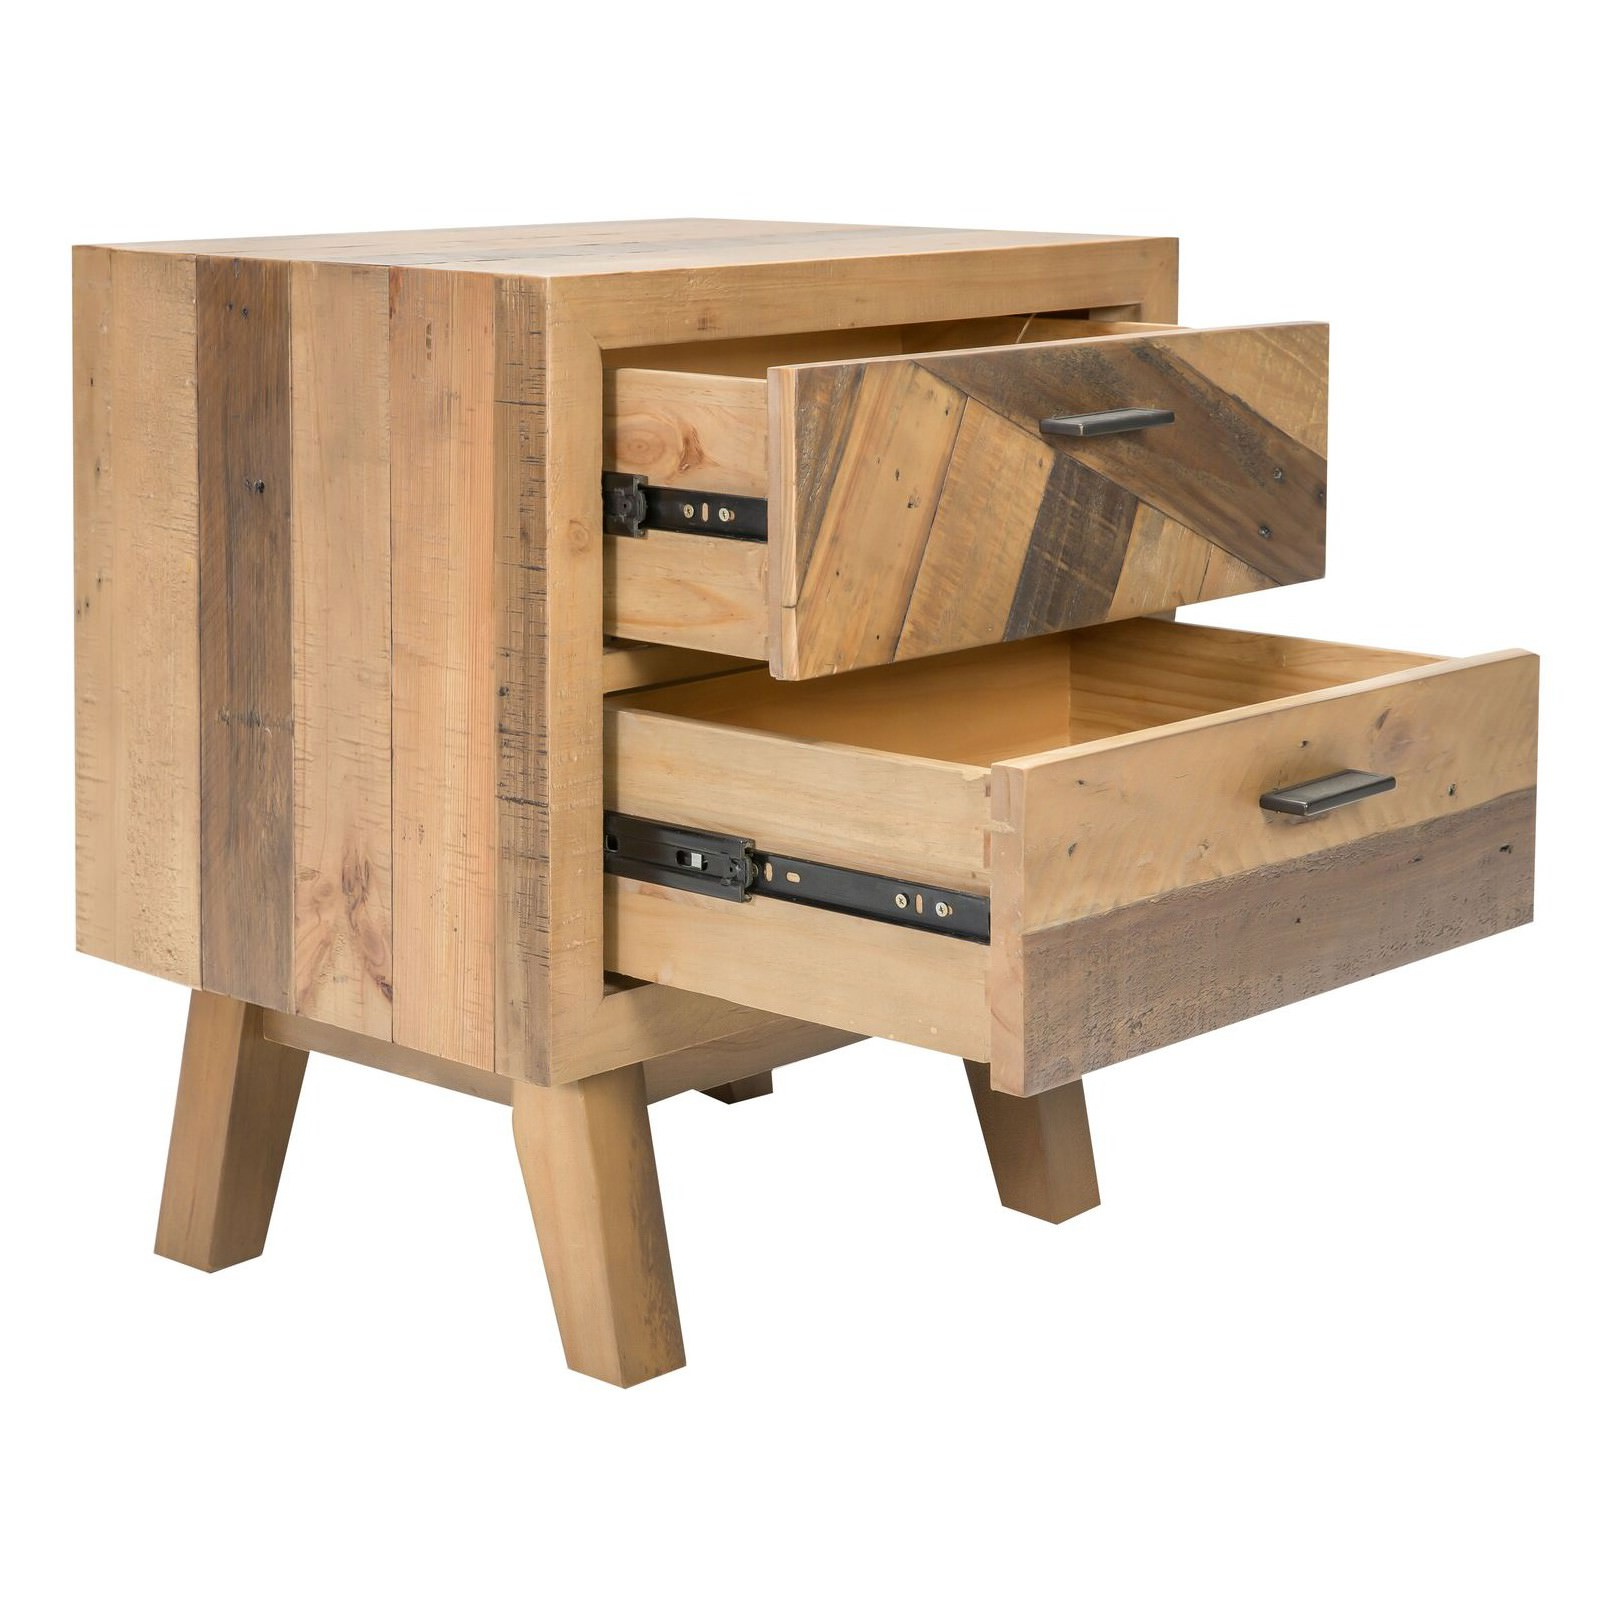 Tallon Recycled Pine Timber Bedside Table